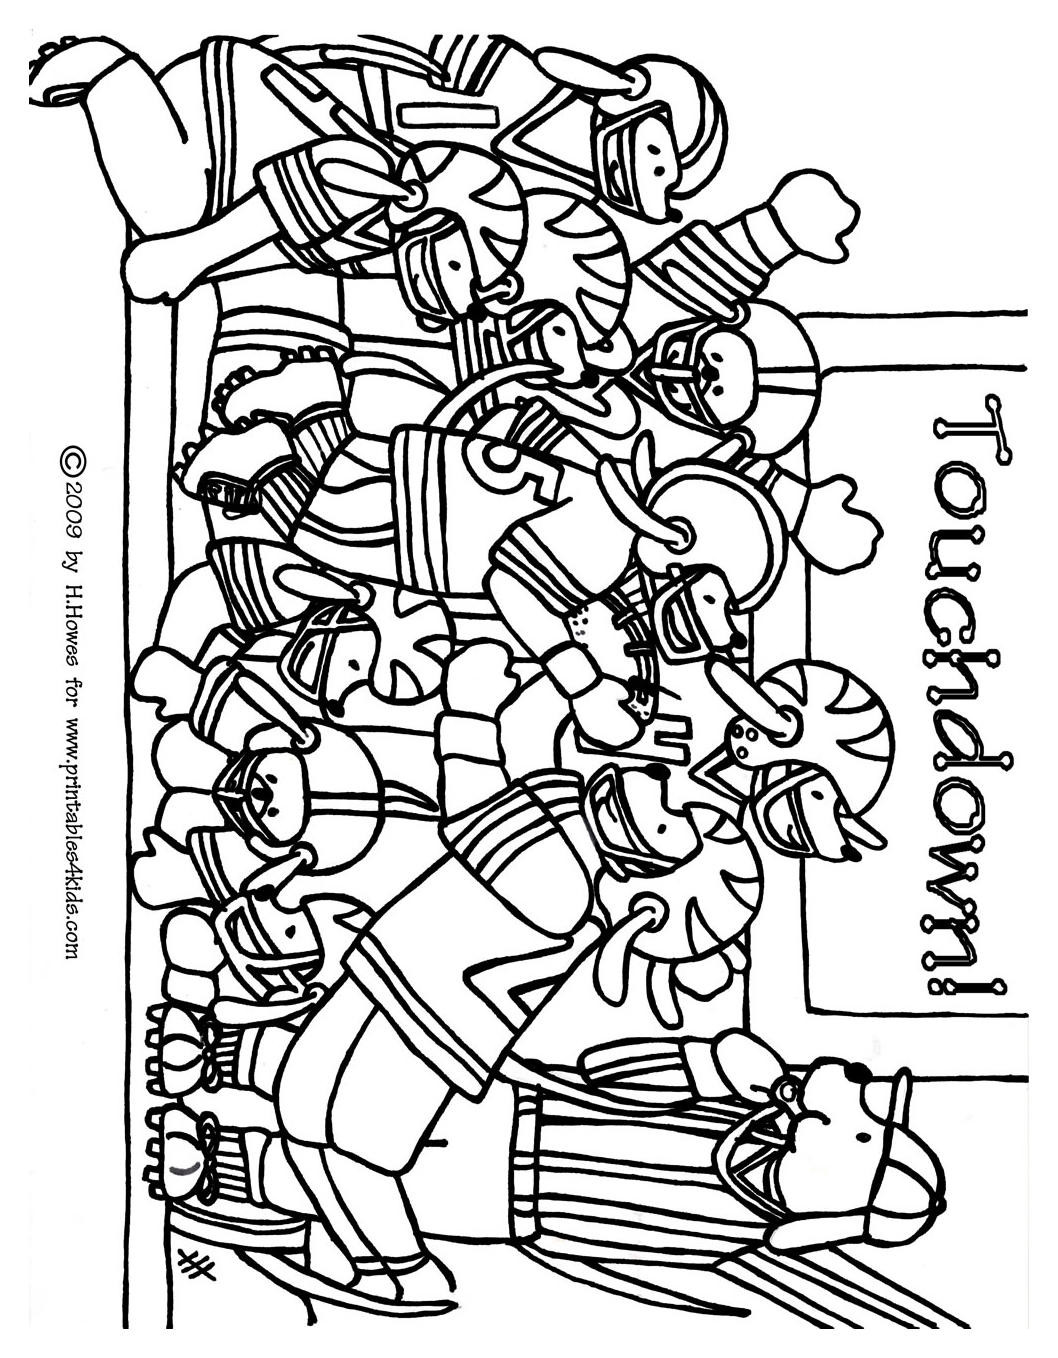 Game Coloring Pages For Kids  Football Game Coloring Pages Coloring Home